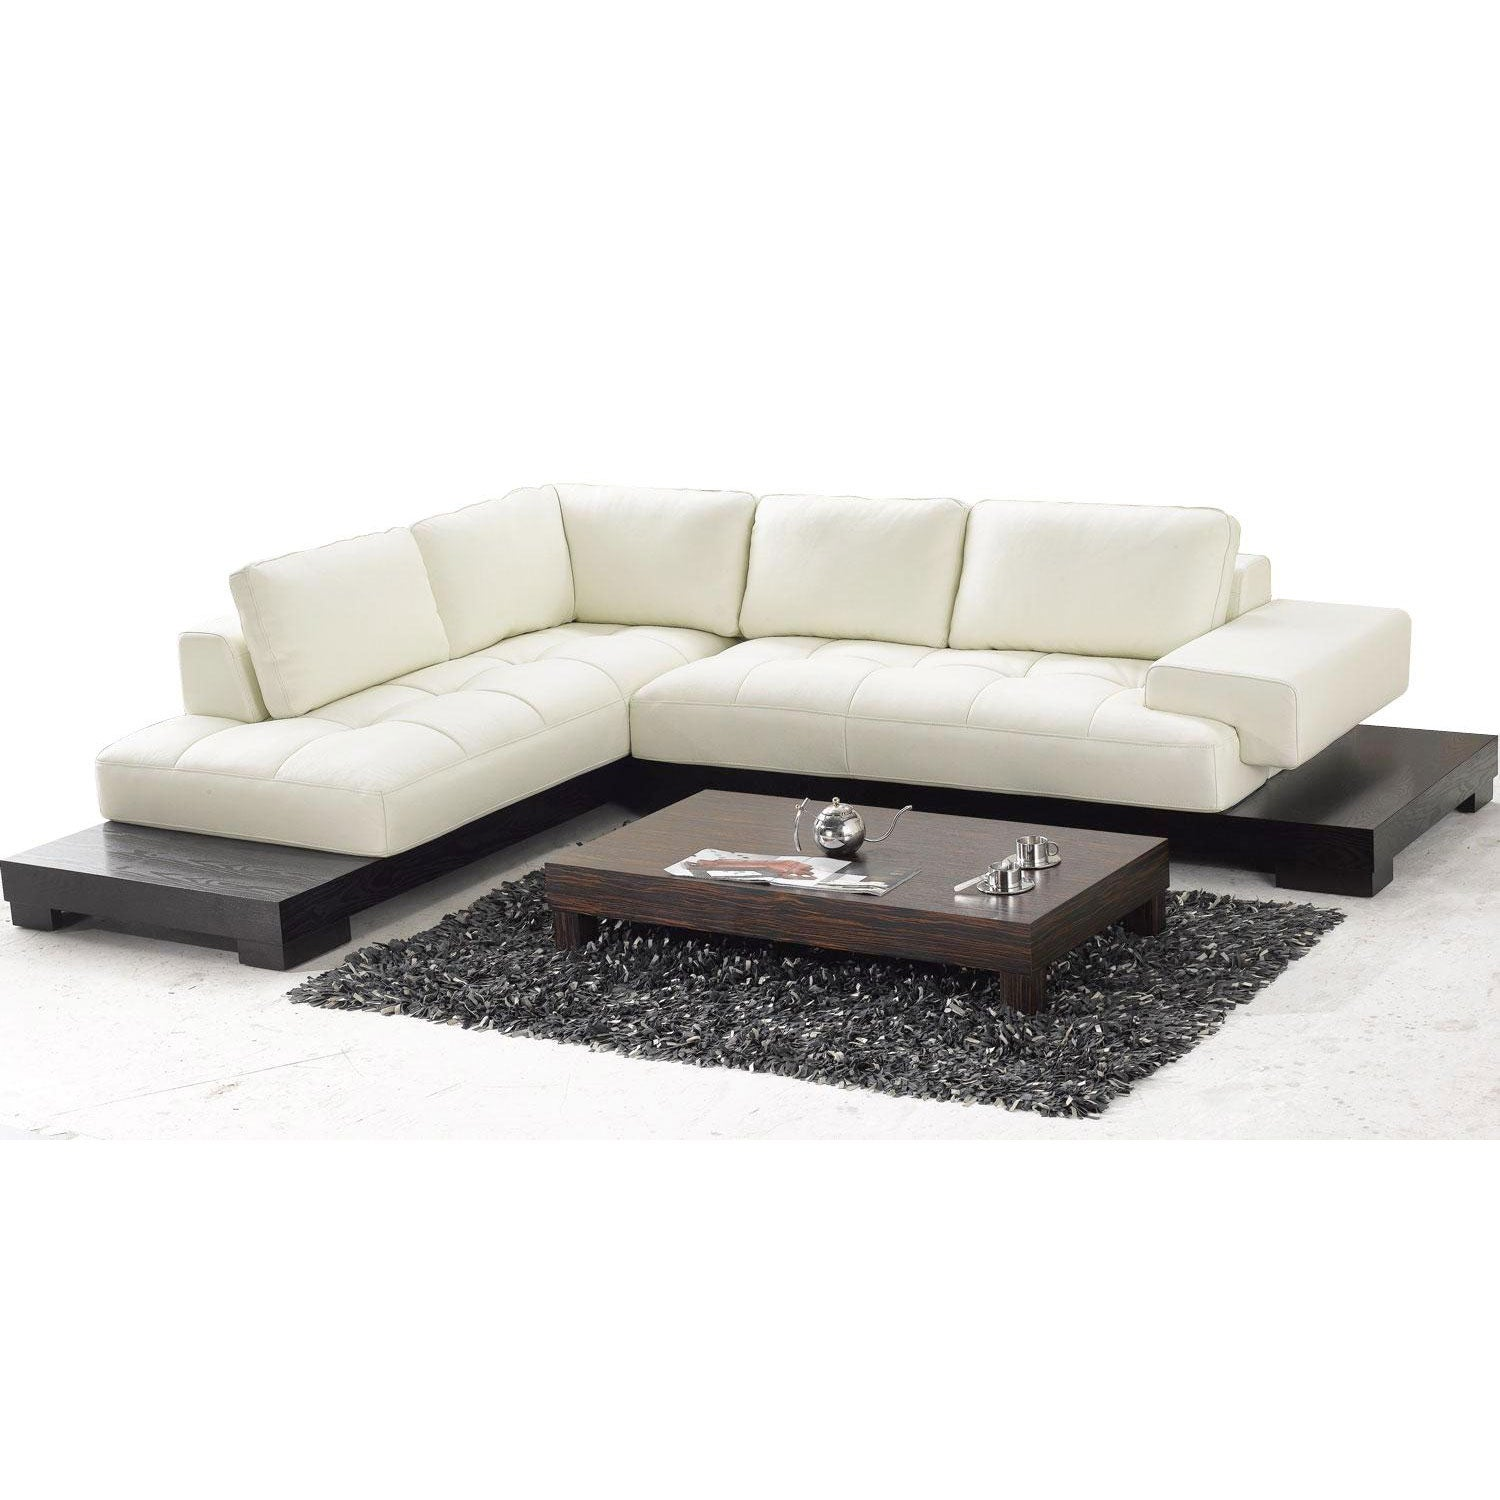 Tosh furniture beige leather sectional sofa overstock for Sectional sofa bed overstock